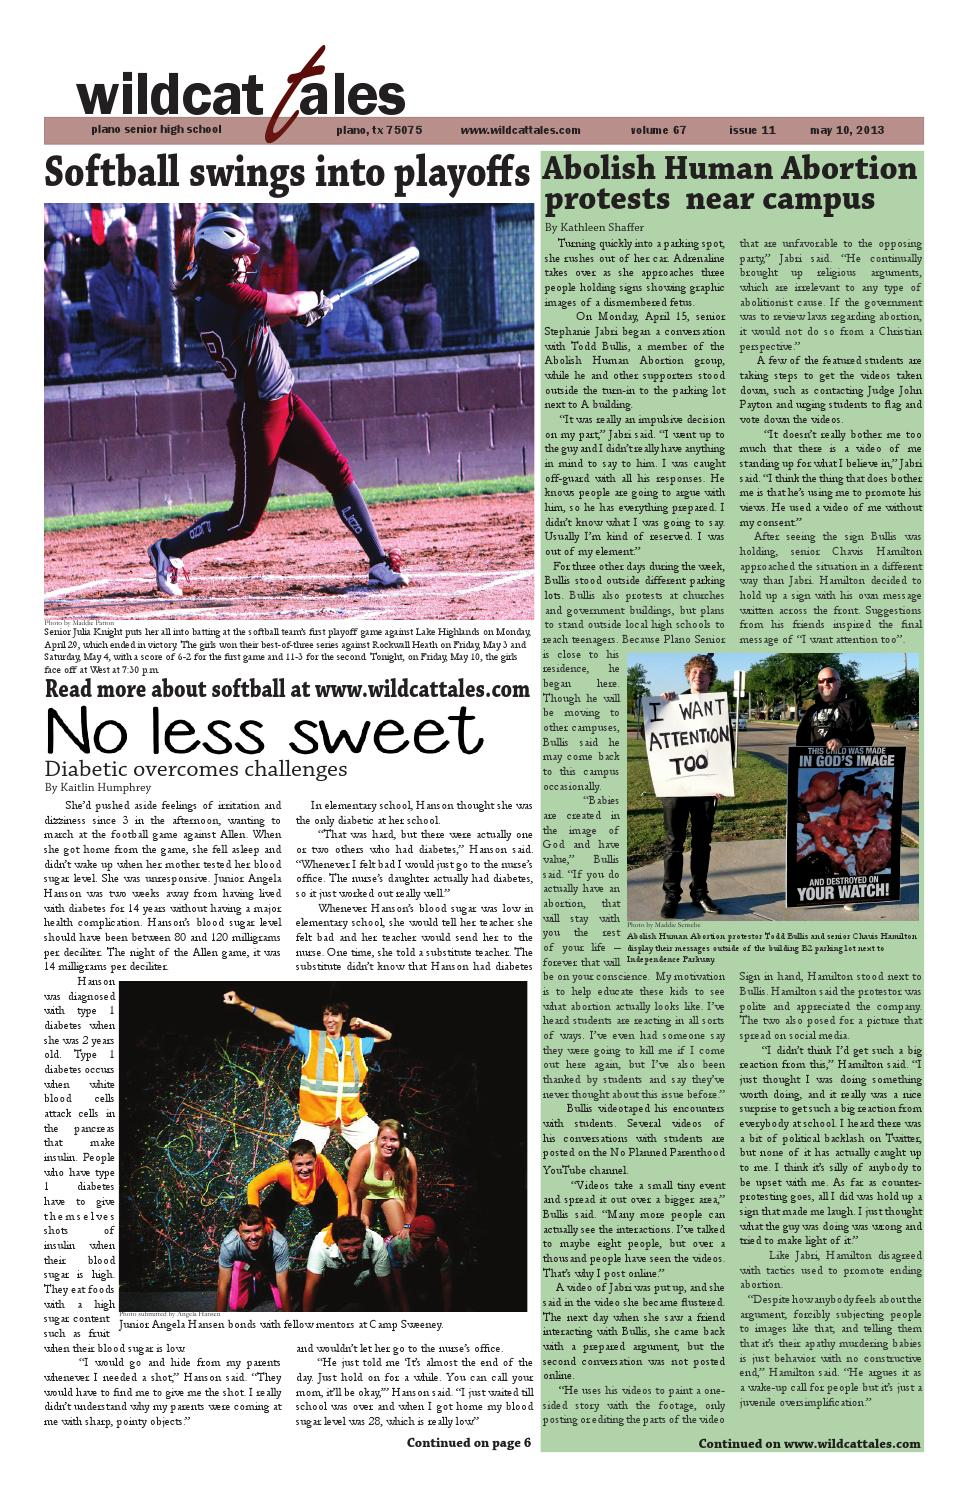 Wildcat Tales Issue 11 May 10, 2013 by Plano Senior High